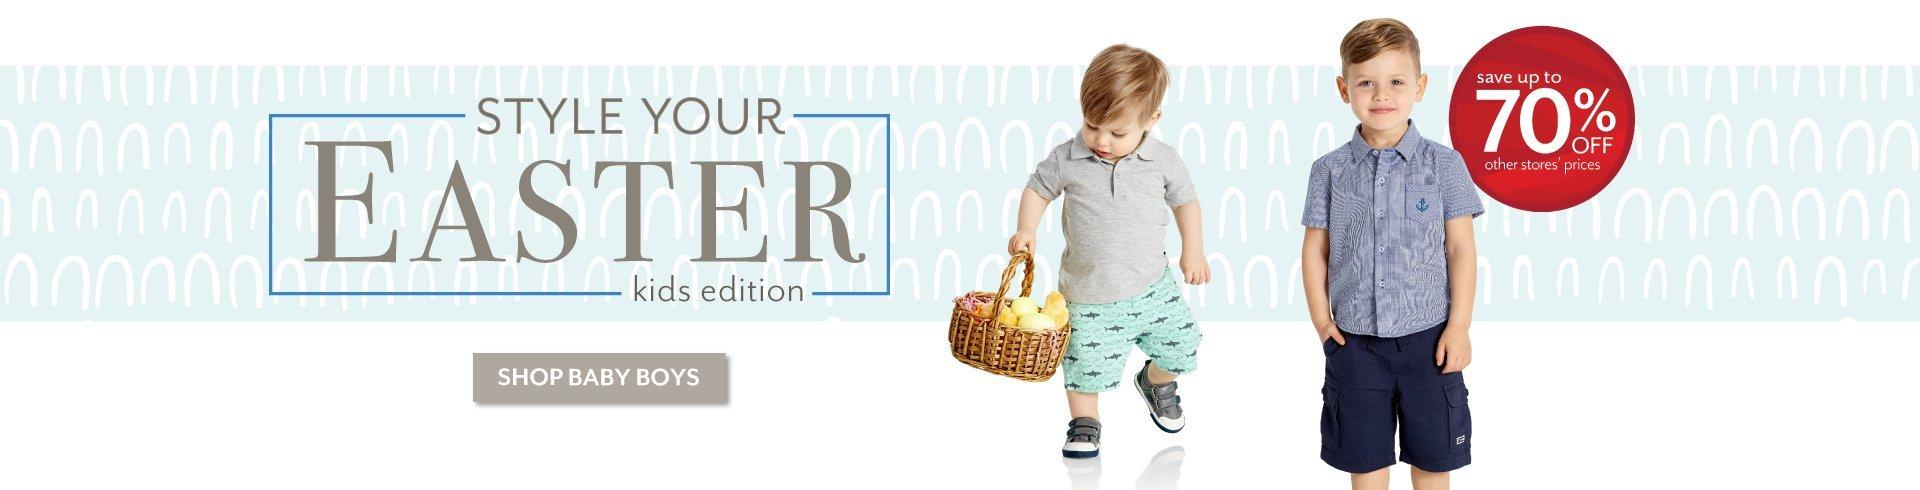 Style Your Easter - Shop the latest styles for Baby Boys at Burkes Outlet